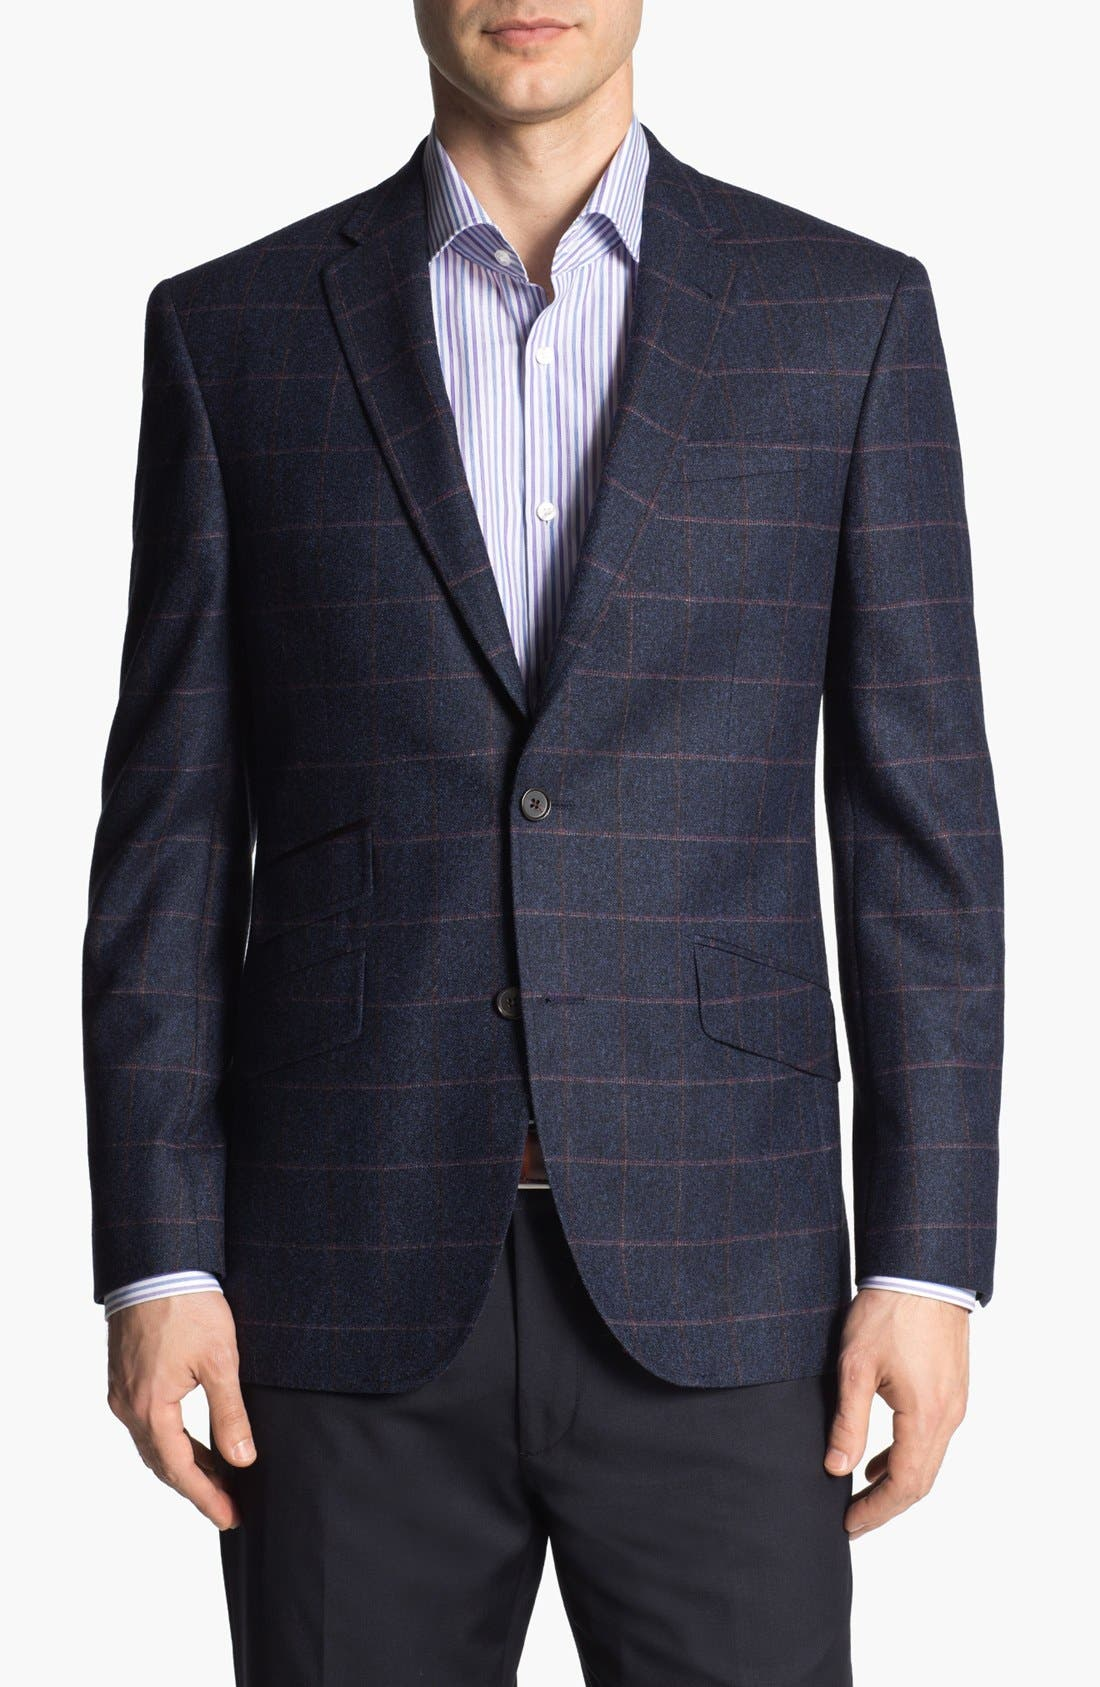 Alternate Image 1 Selected - Ted Baker London 'Jim' Trim Fit Plaid Sportcoat (Online Only)